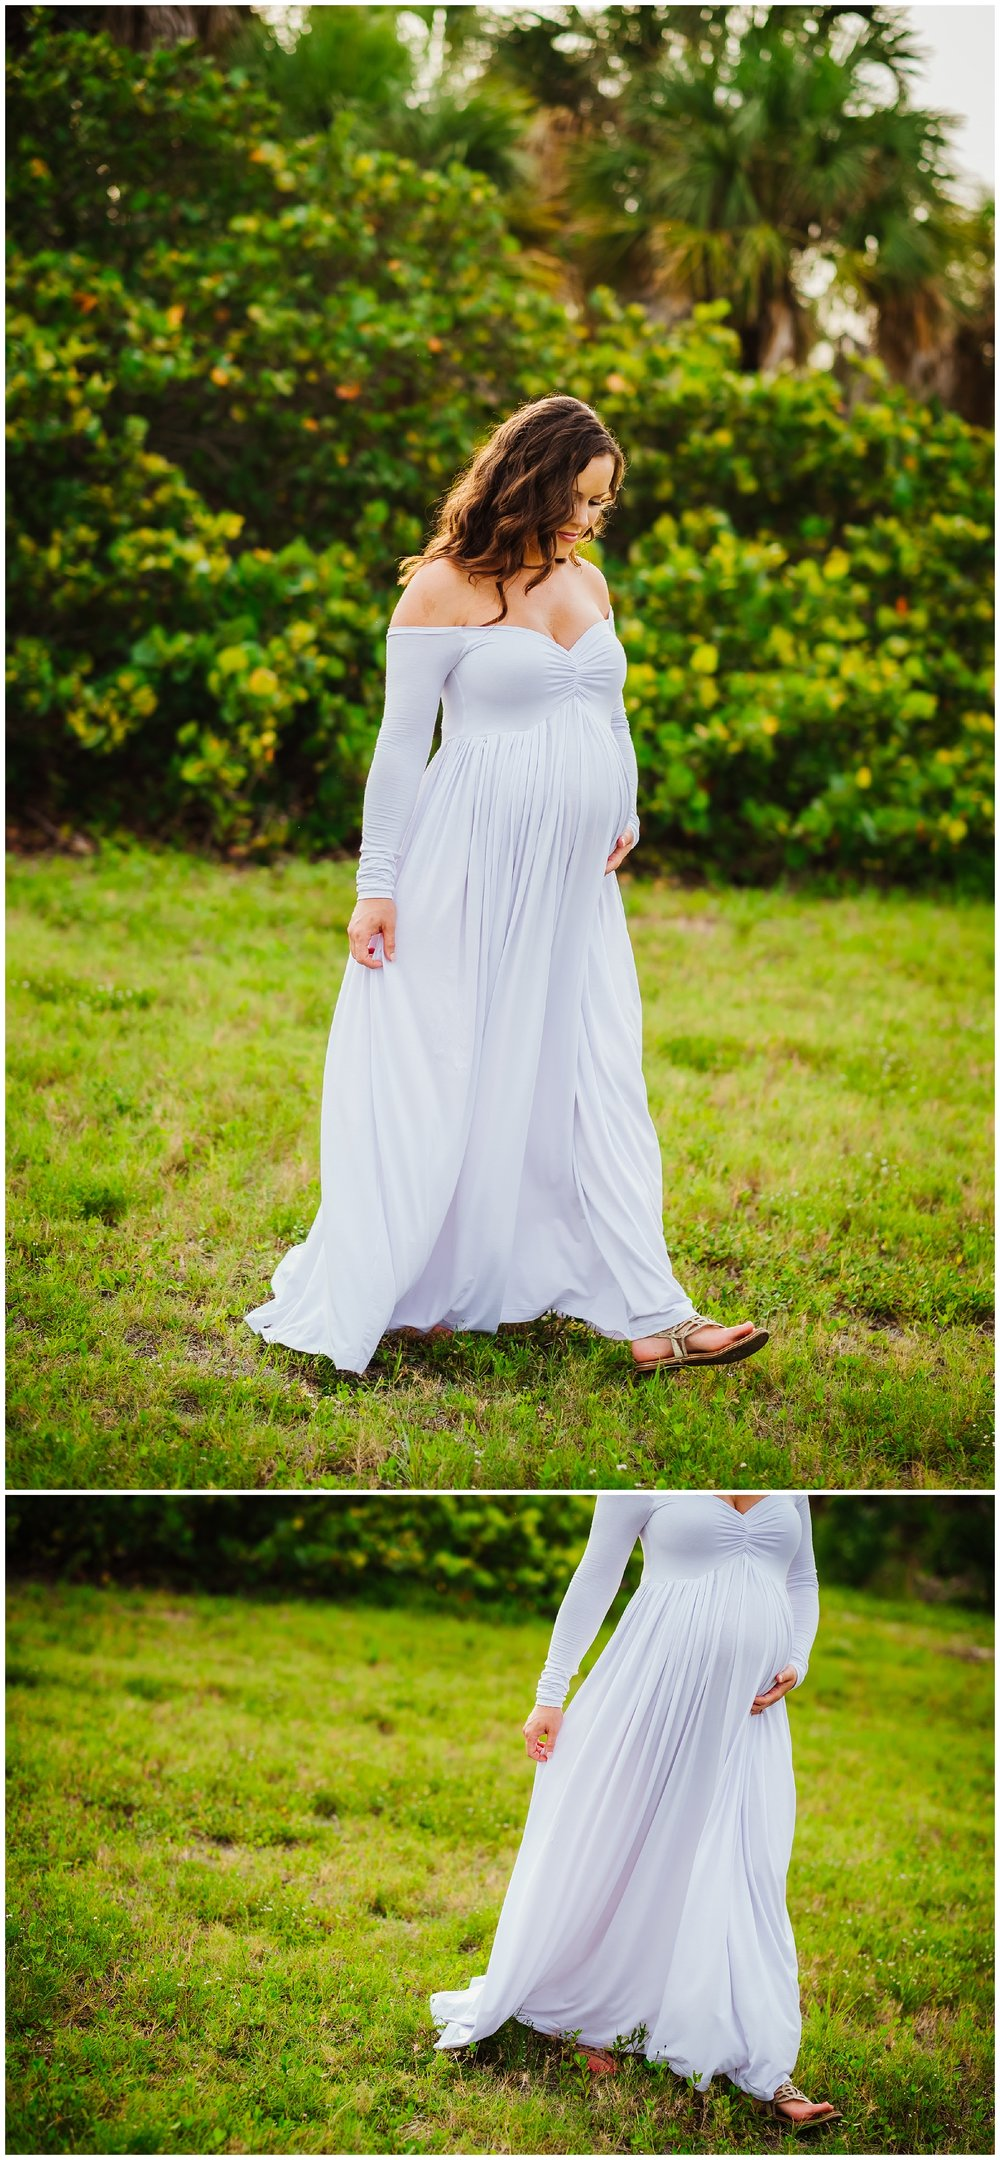 fort-desoto-maternity-photos-florida-beach-sunset_0005.jpg